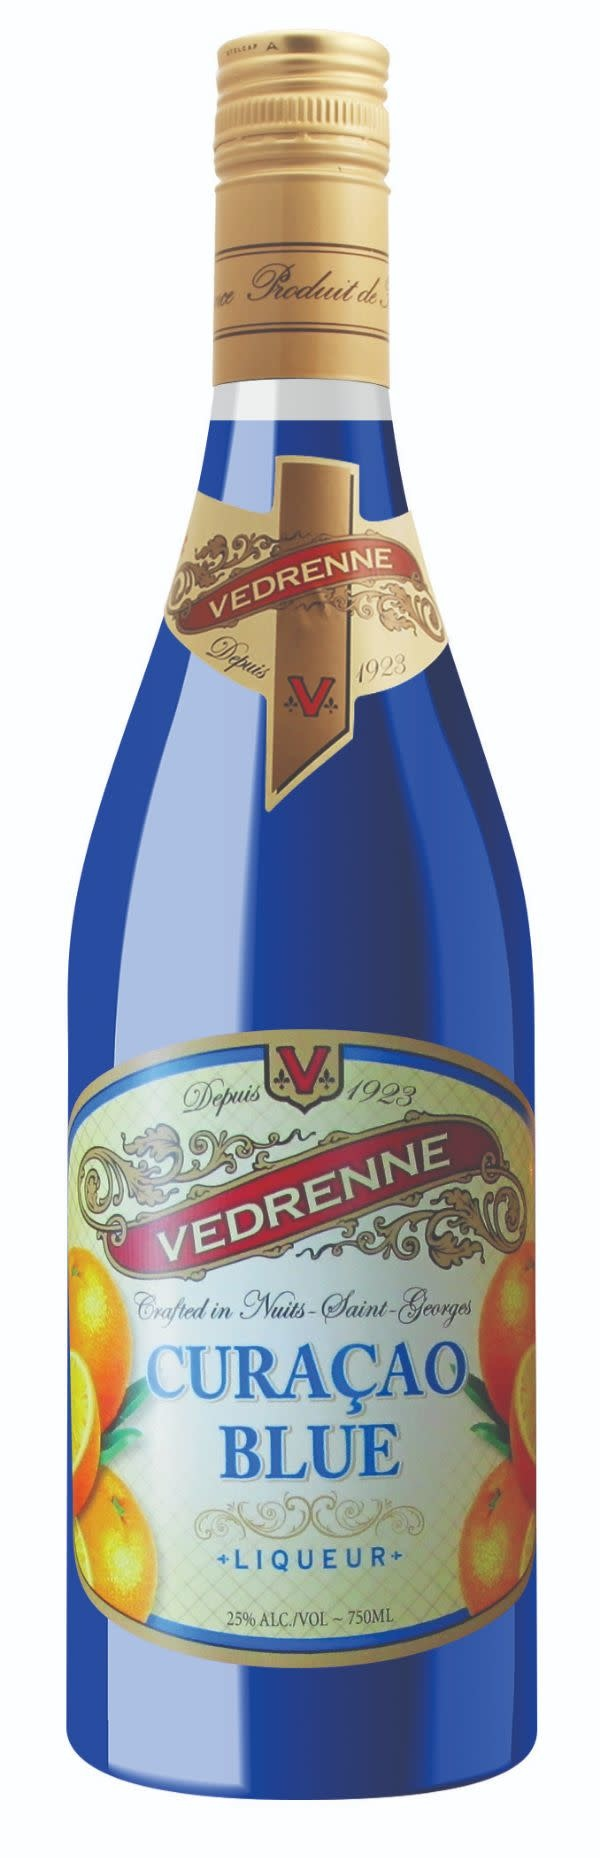 Vedrenne Blue Curacao ABV: 25% 750 mL